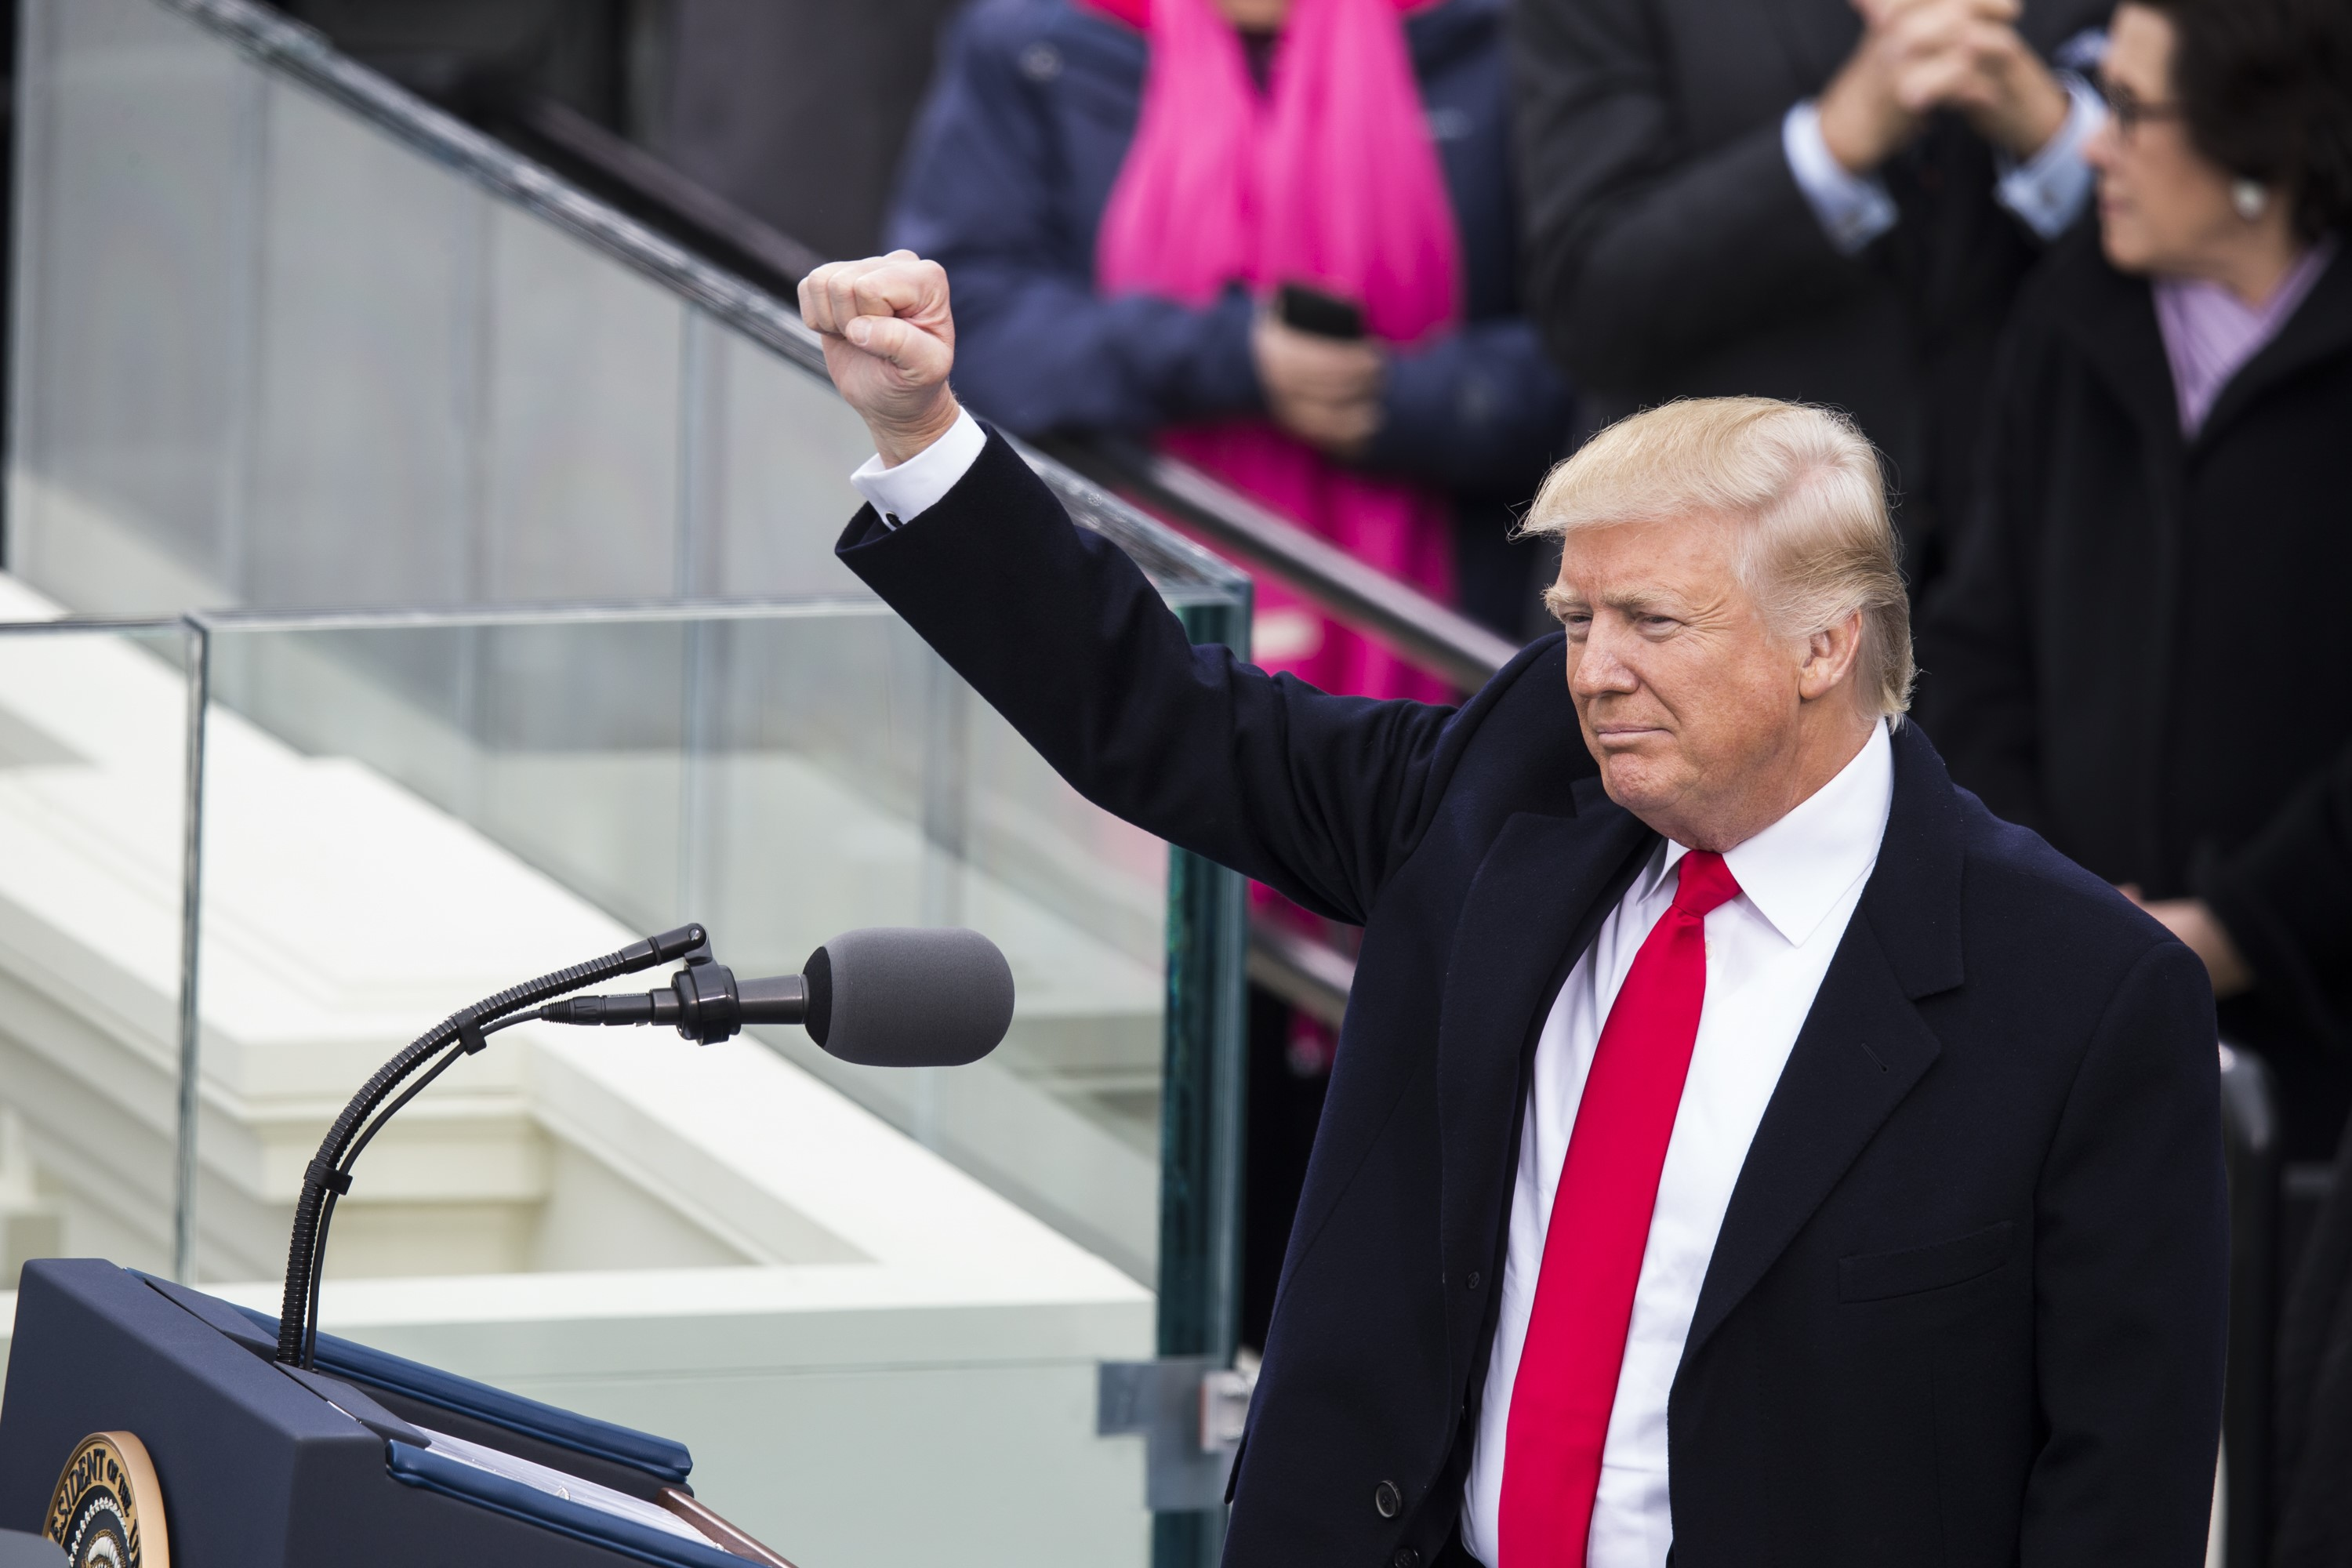 With no end to feud mulayam akhilesh yadav look for life beyond the cycle economic times - Indian Supporters Of Uttar Pradesh S Chief Minister Akhilesh Yadav Protestdonald Trump Is Sworn In As 45th